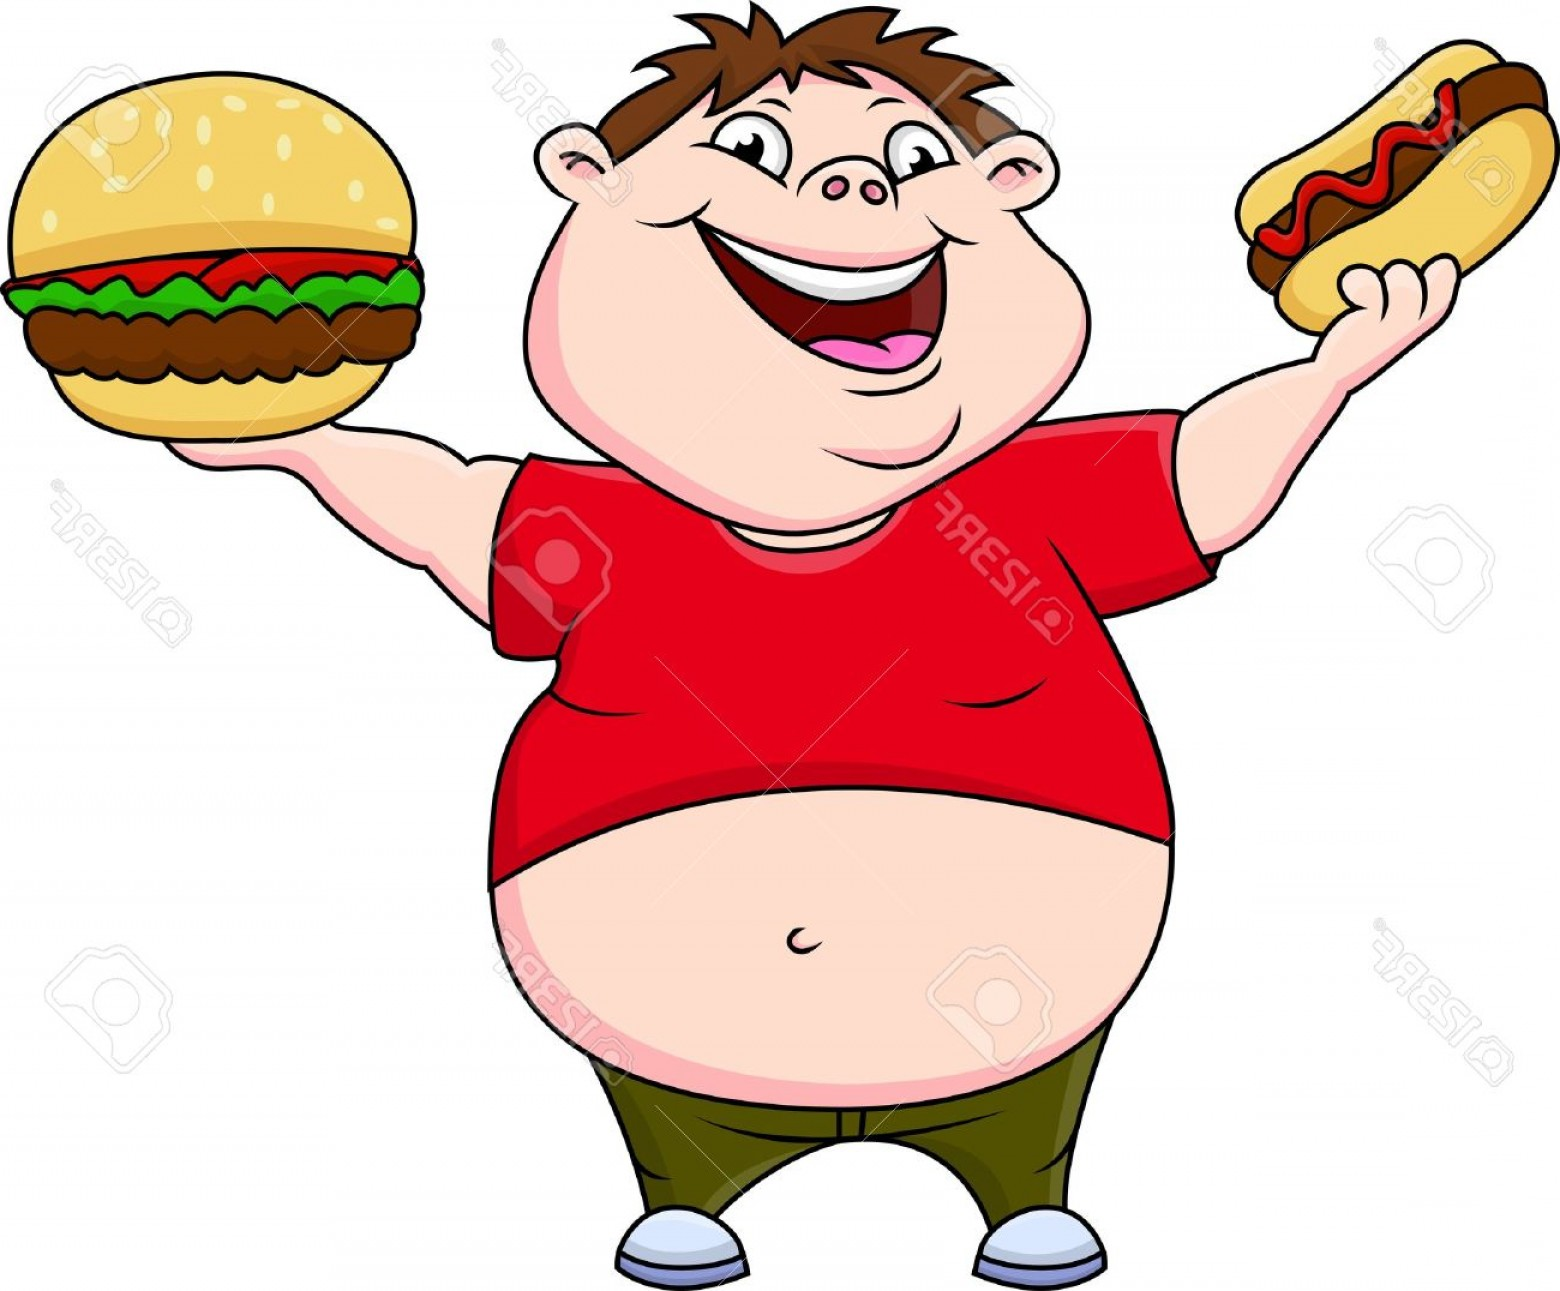 Fat Boy Logo Vector Art: Photostock Vector Fat Boy Smiling And Ready To Eat Hotdog And Hamburger